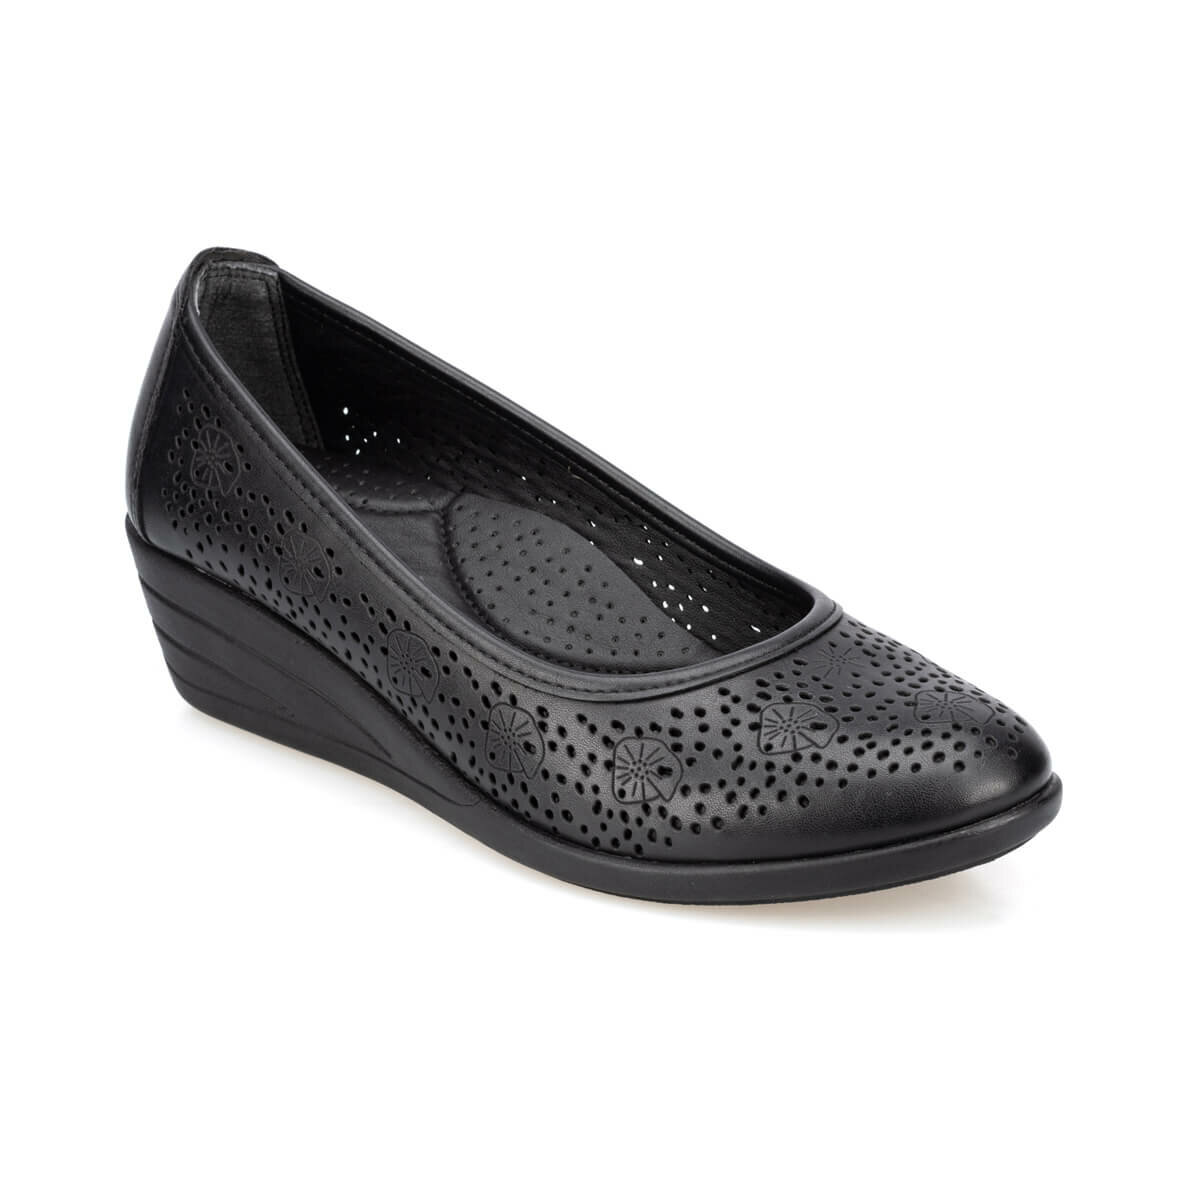 FLO 91.150707.Z Black Women Shoes Polaris